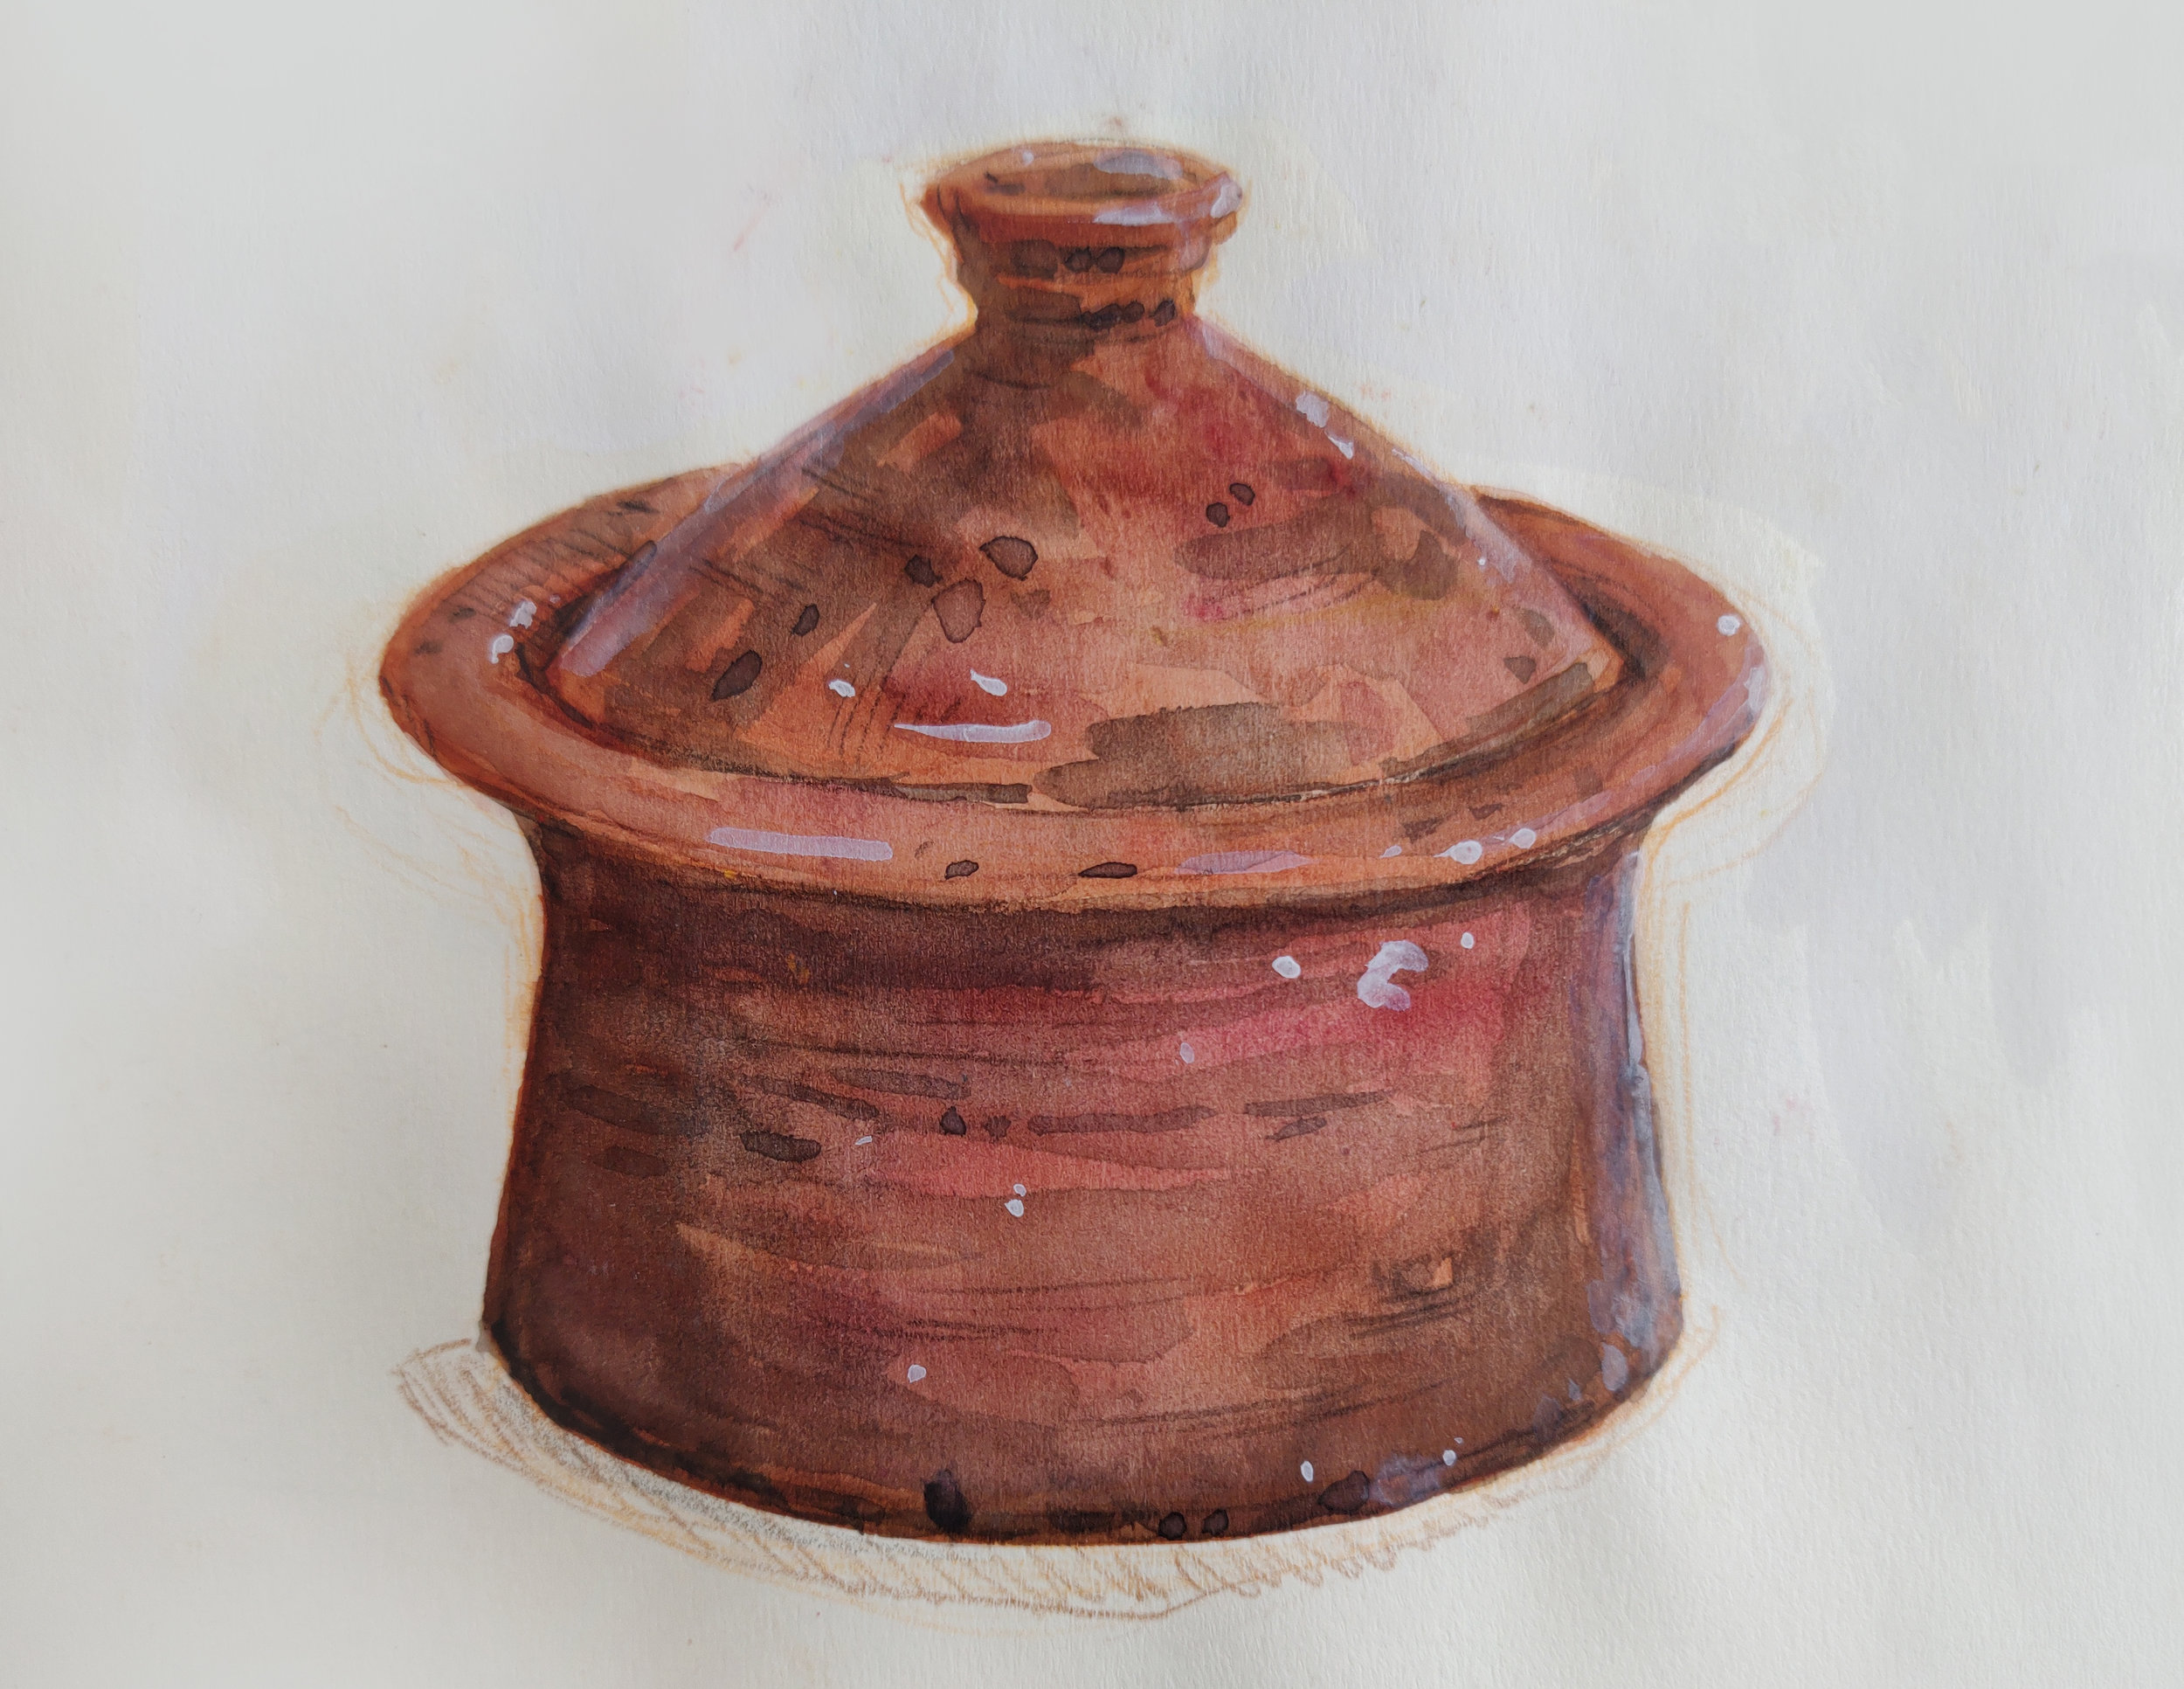 A clay cooking pot from the kitchen of the Berrechid school. (Clay cookware is common in Morocco.)